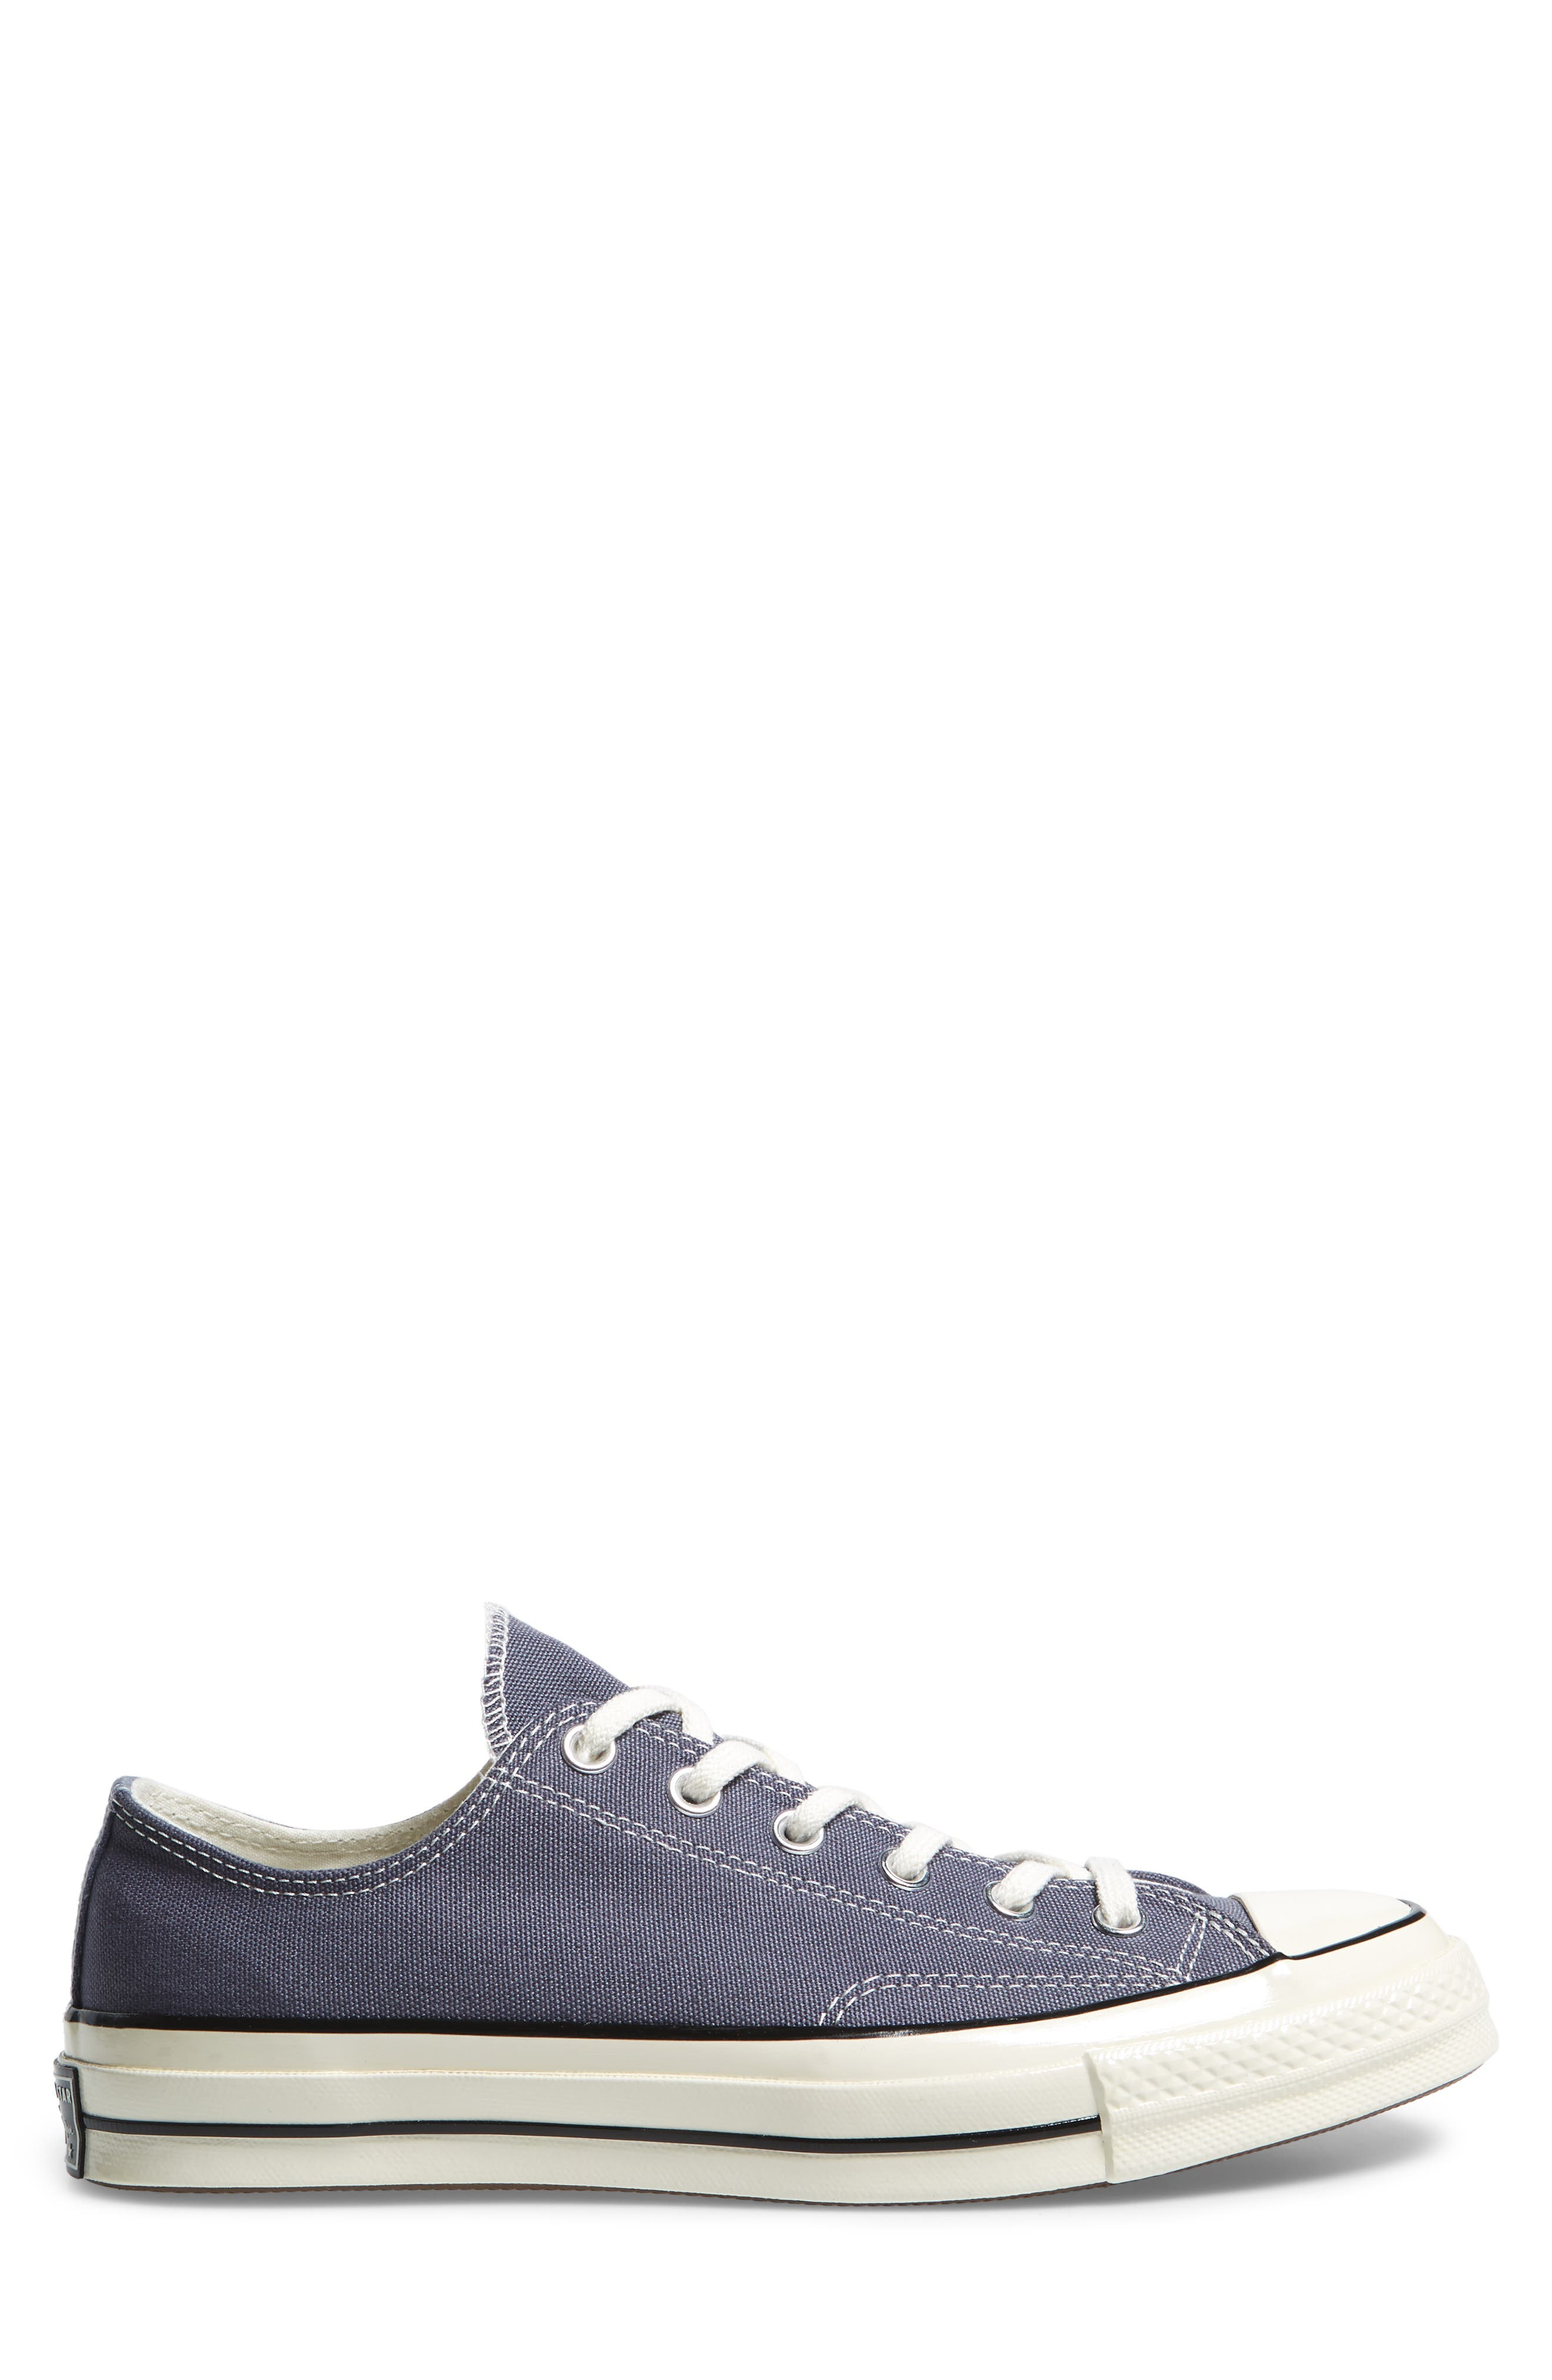 Chuck Taylor<sup>®</sup> All Star<sup>®</sup> 70 Heritage Sneaker,                             Alternate thumbnail 3, color,                             Light Carbon Canvas